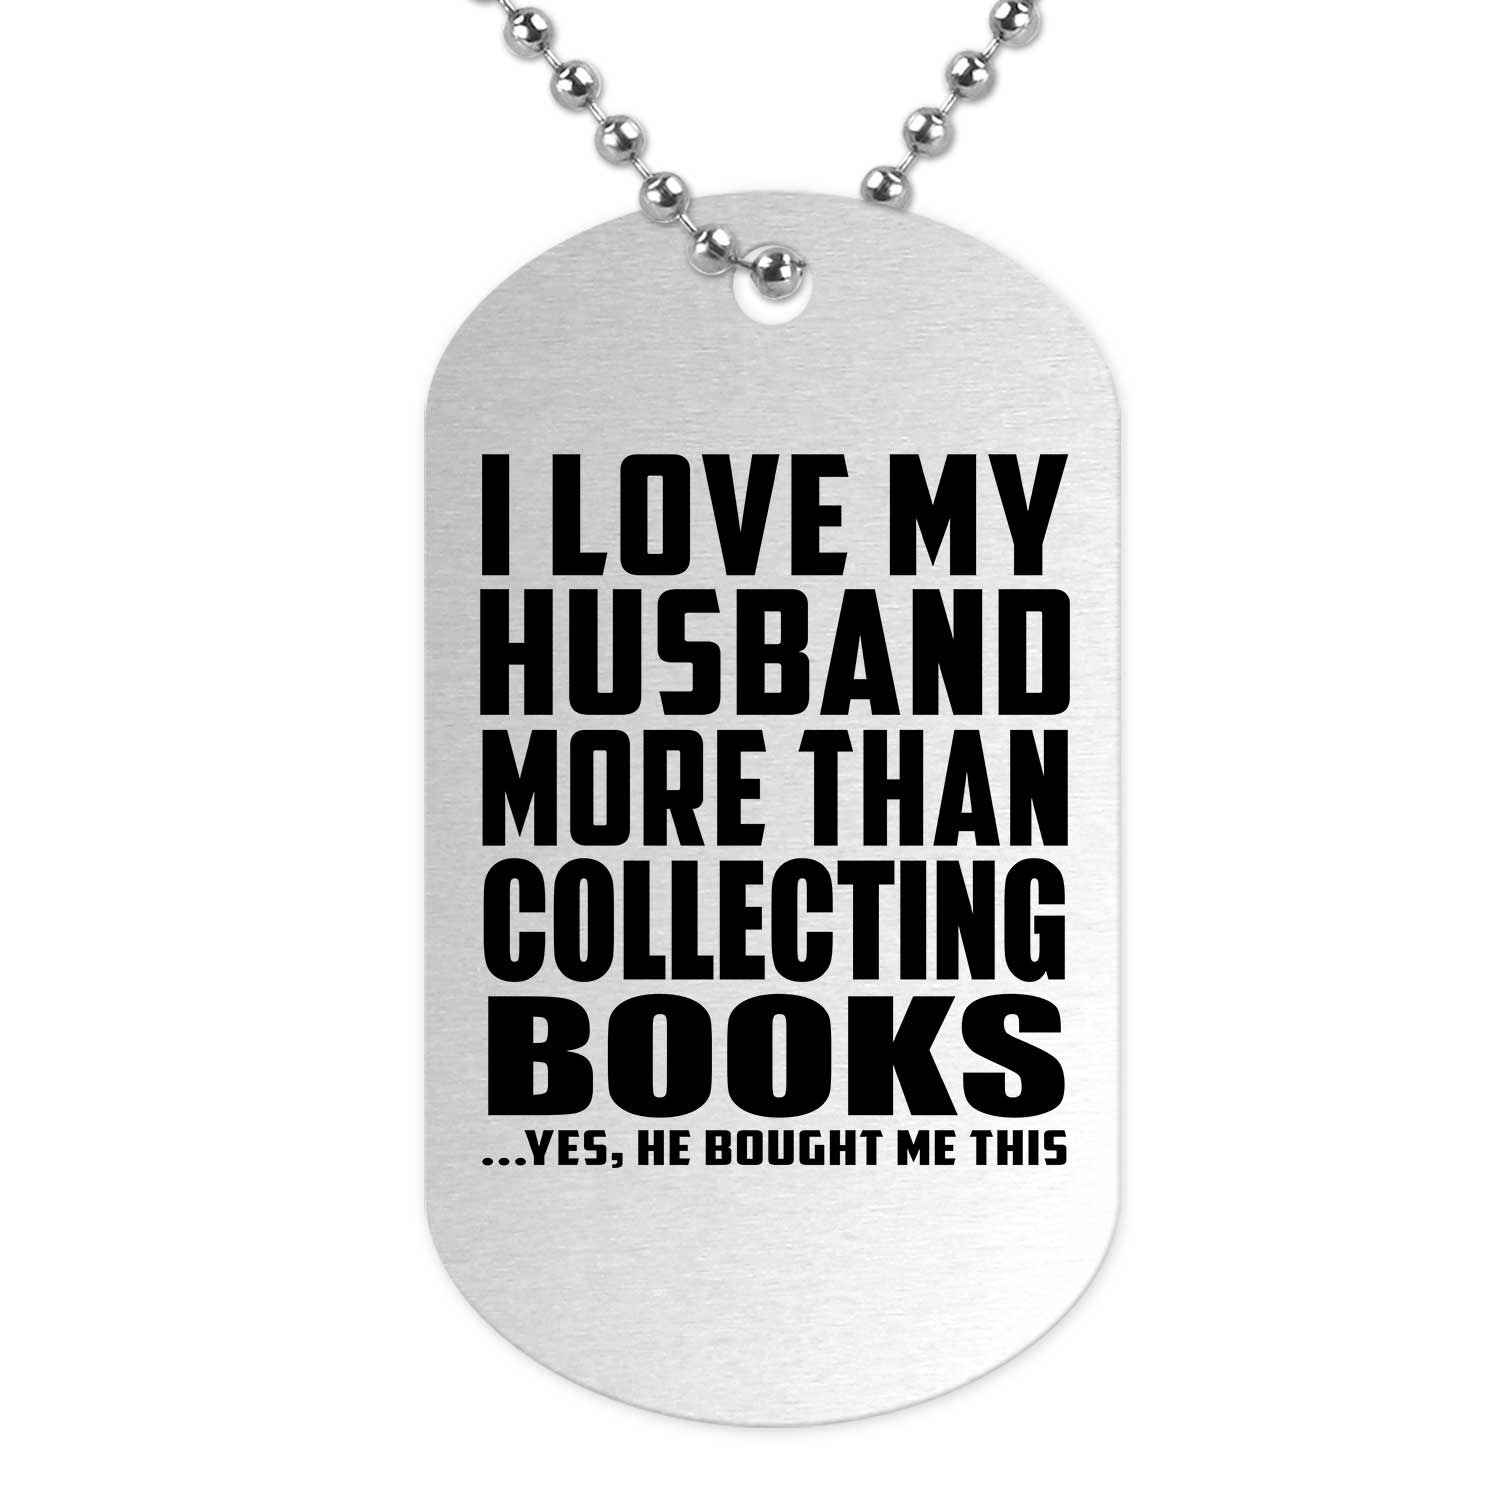 I Love My Husband More Than Collecting Books - Military Dog Tag